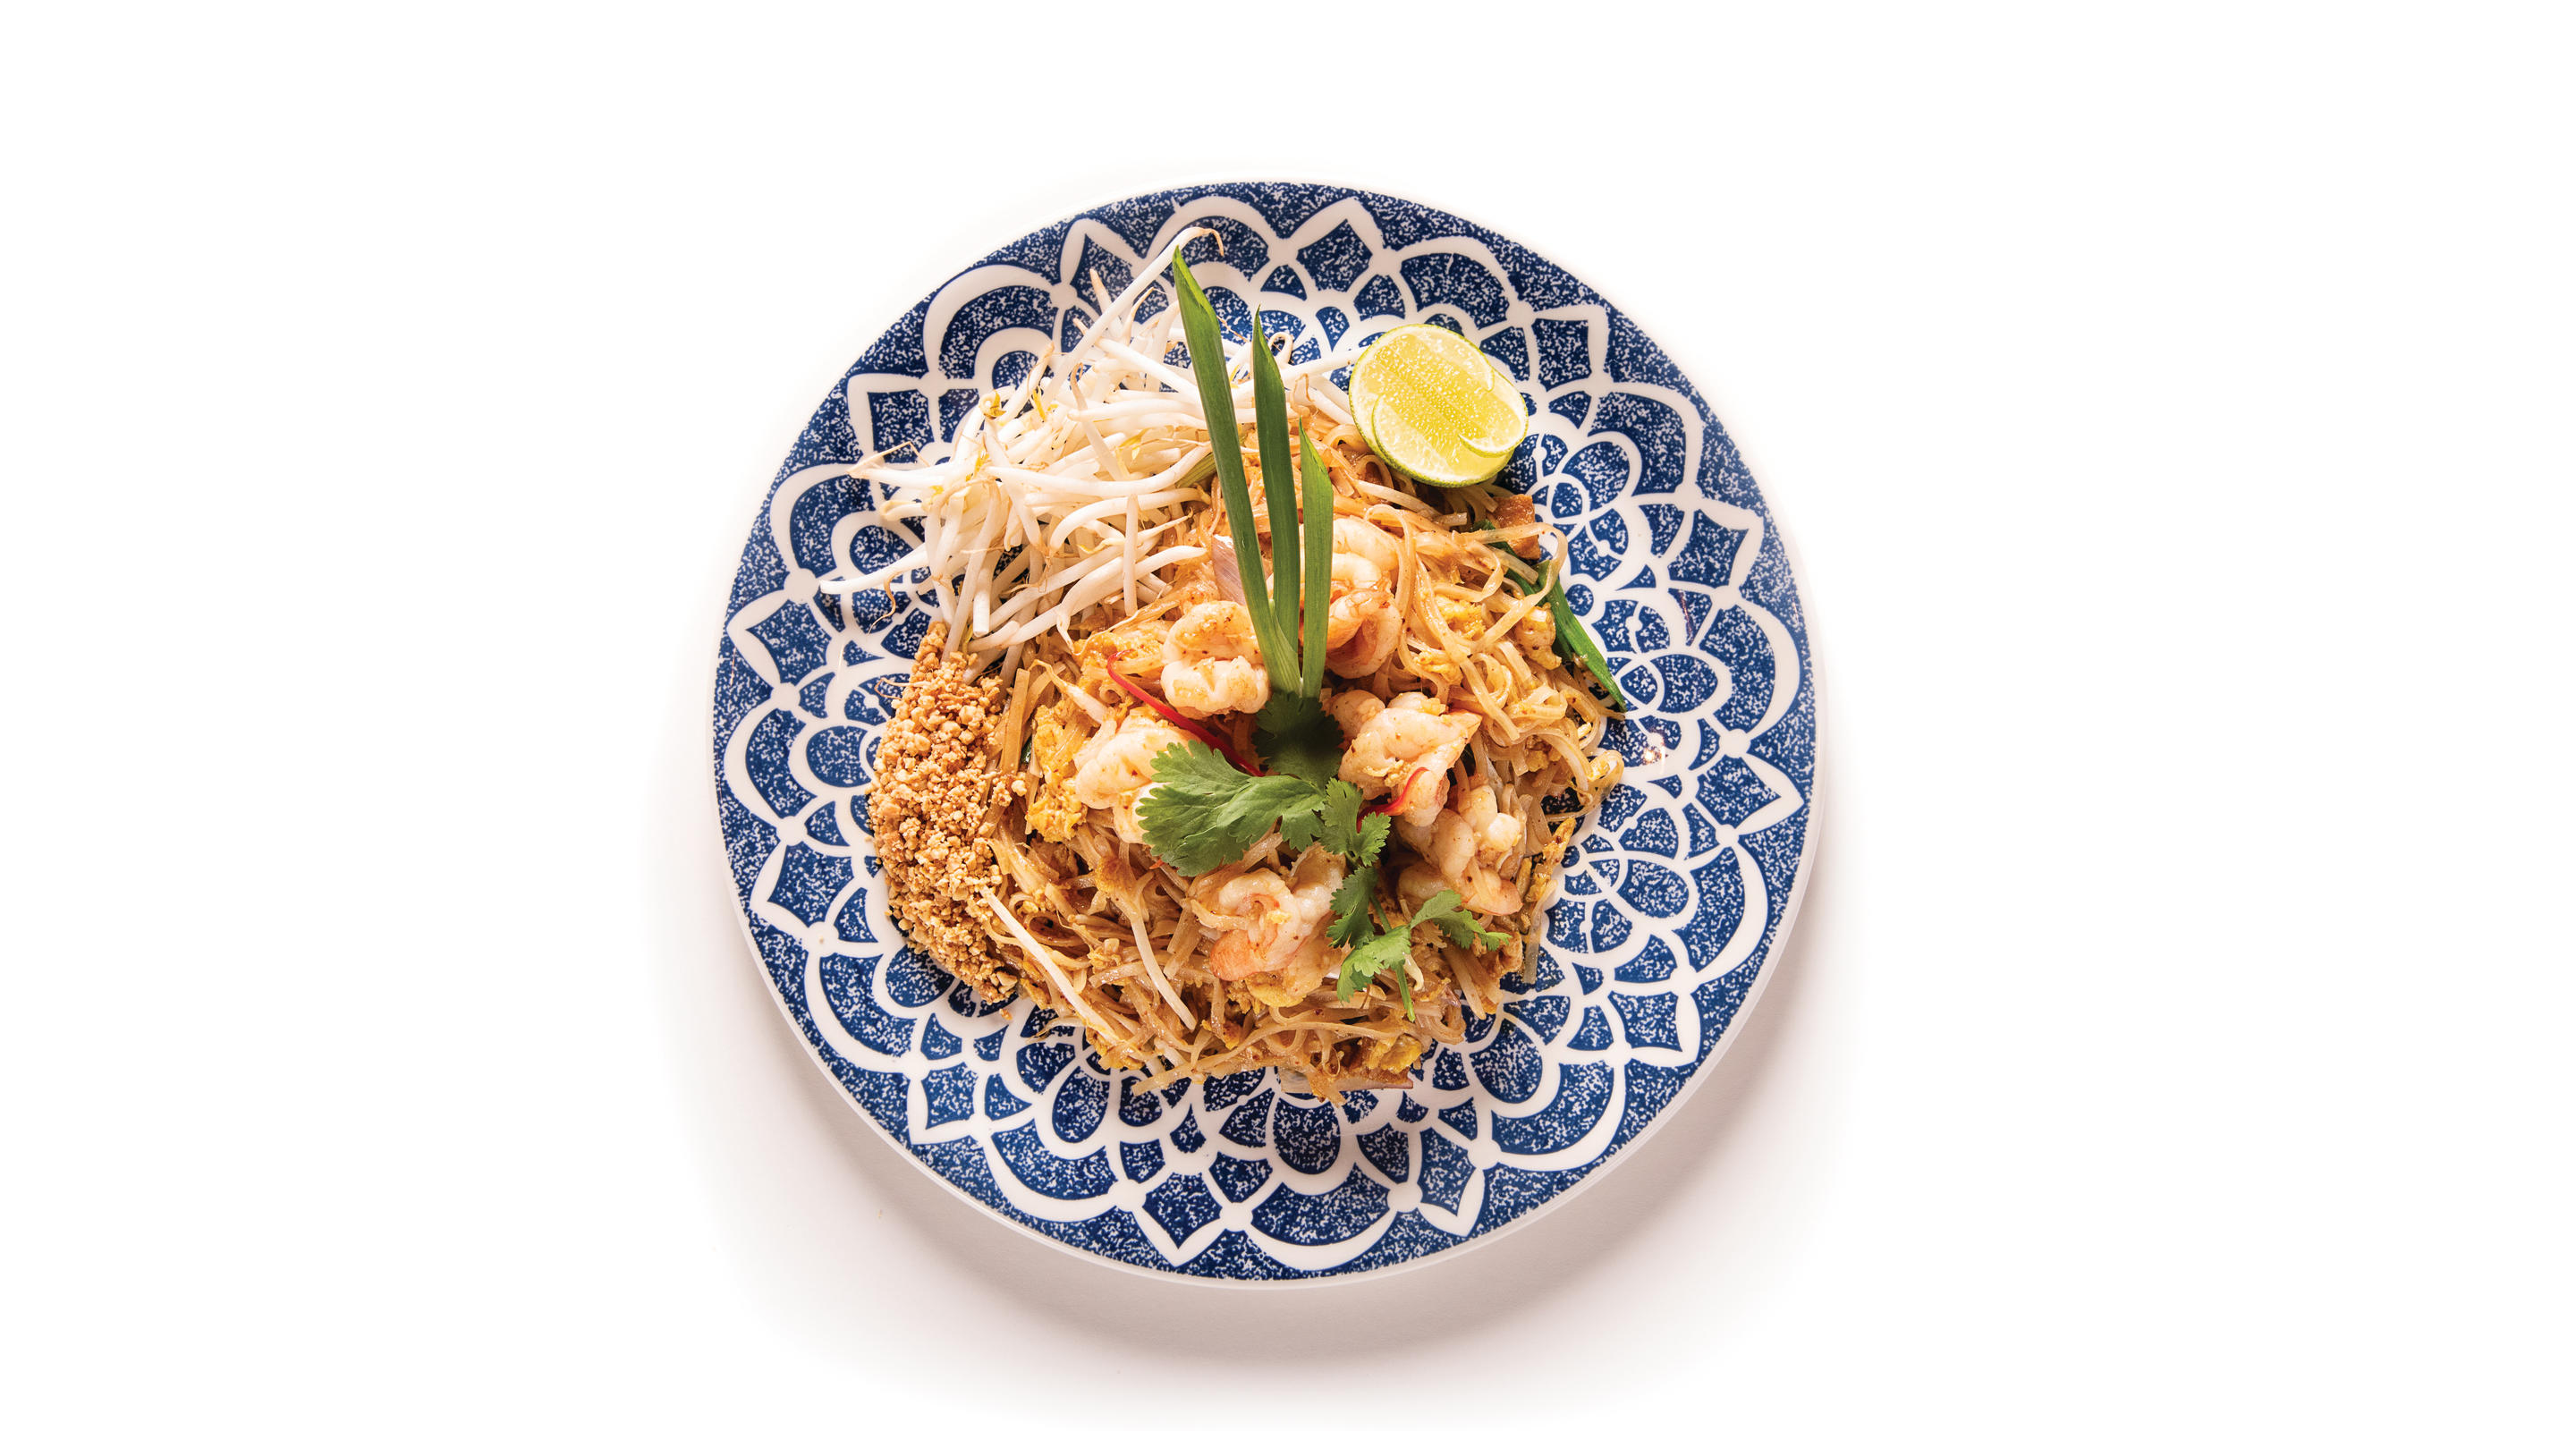 A plate of pad thai from Lemongrass.